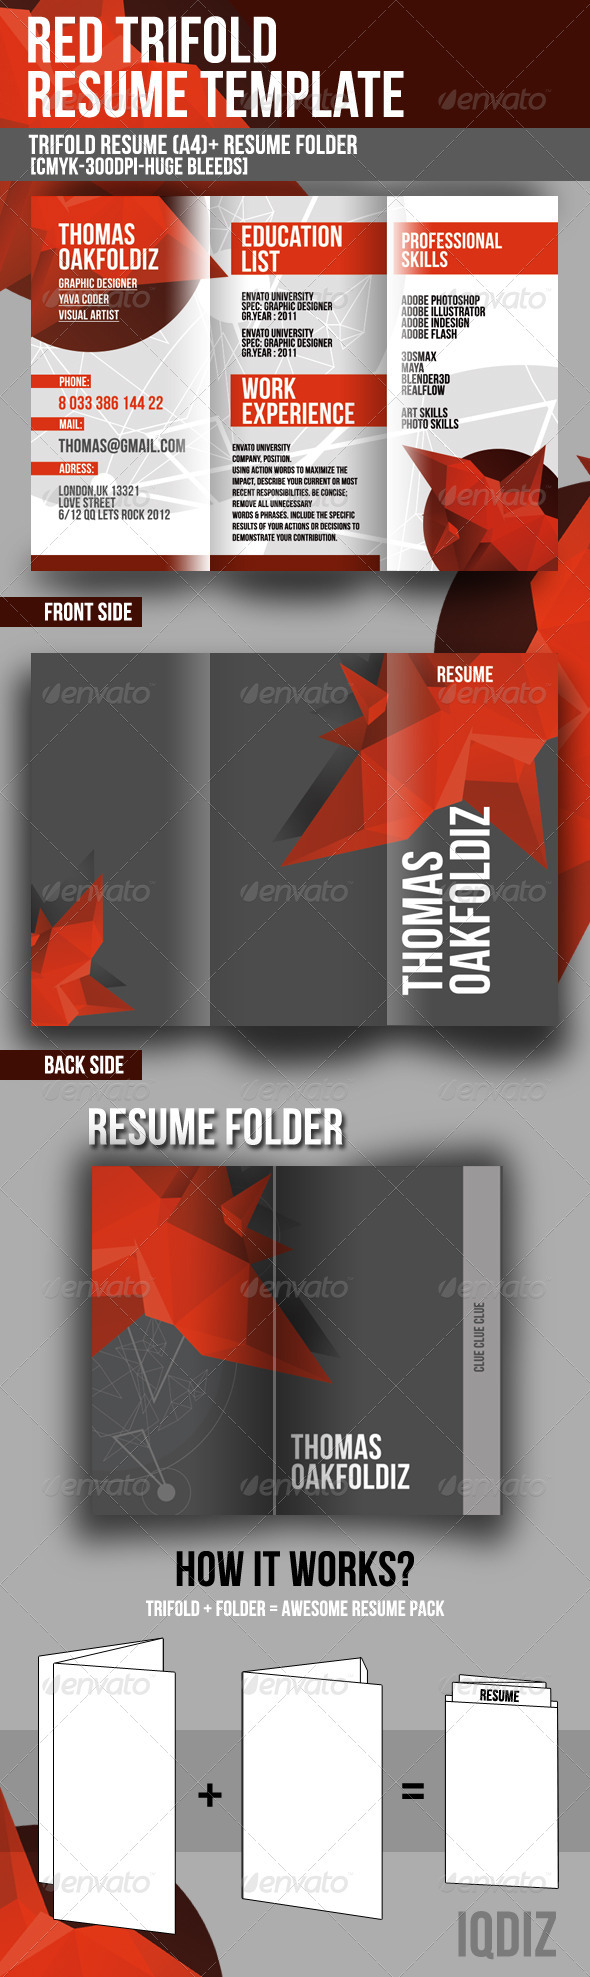 Red Trifold Resume Template By Iqdiz | Graphicriver